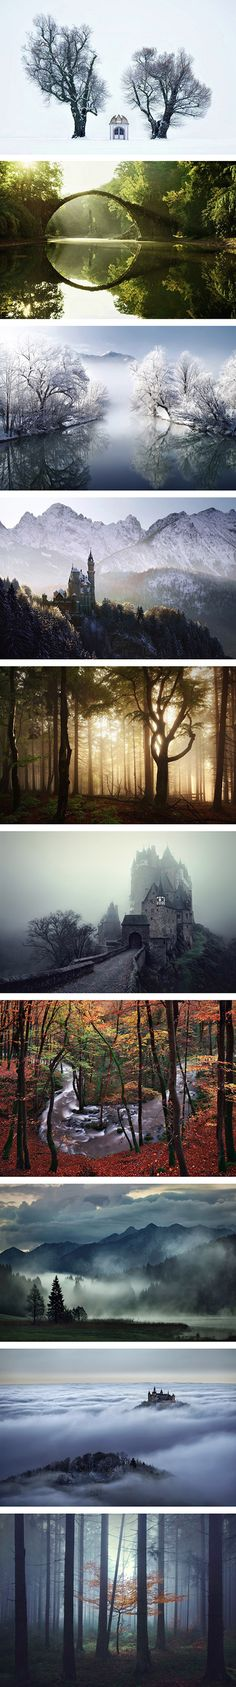 Photographer Captures 10 Stunning Brothers Grimm-Inspired Photos of Natural Landscapes